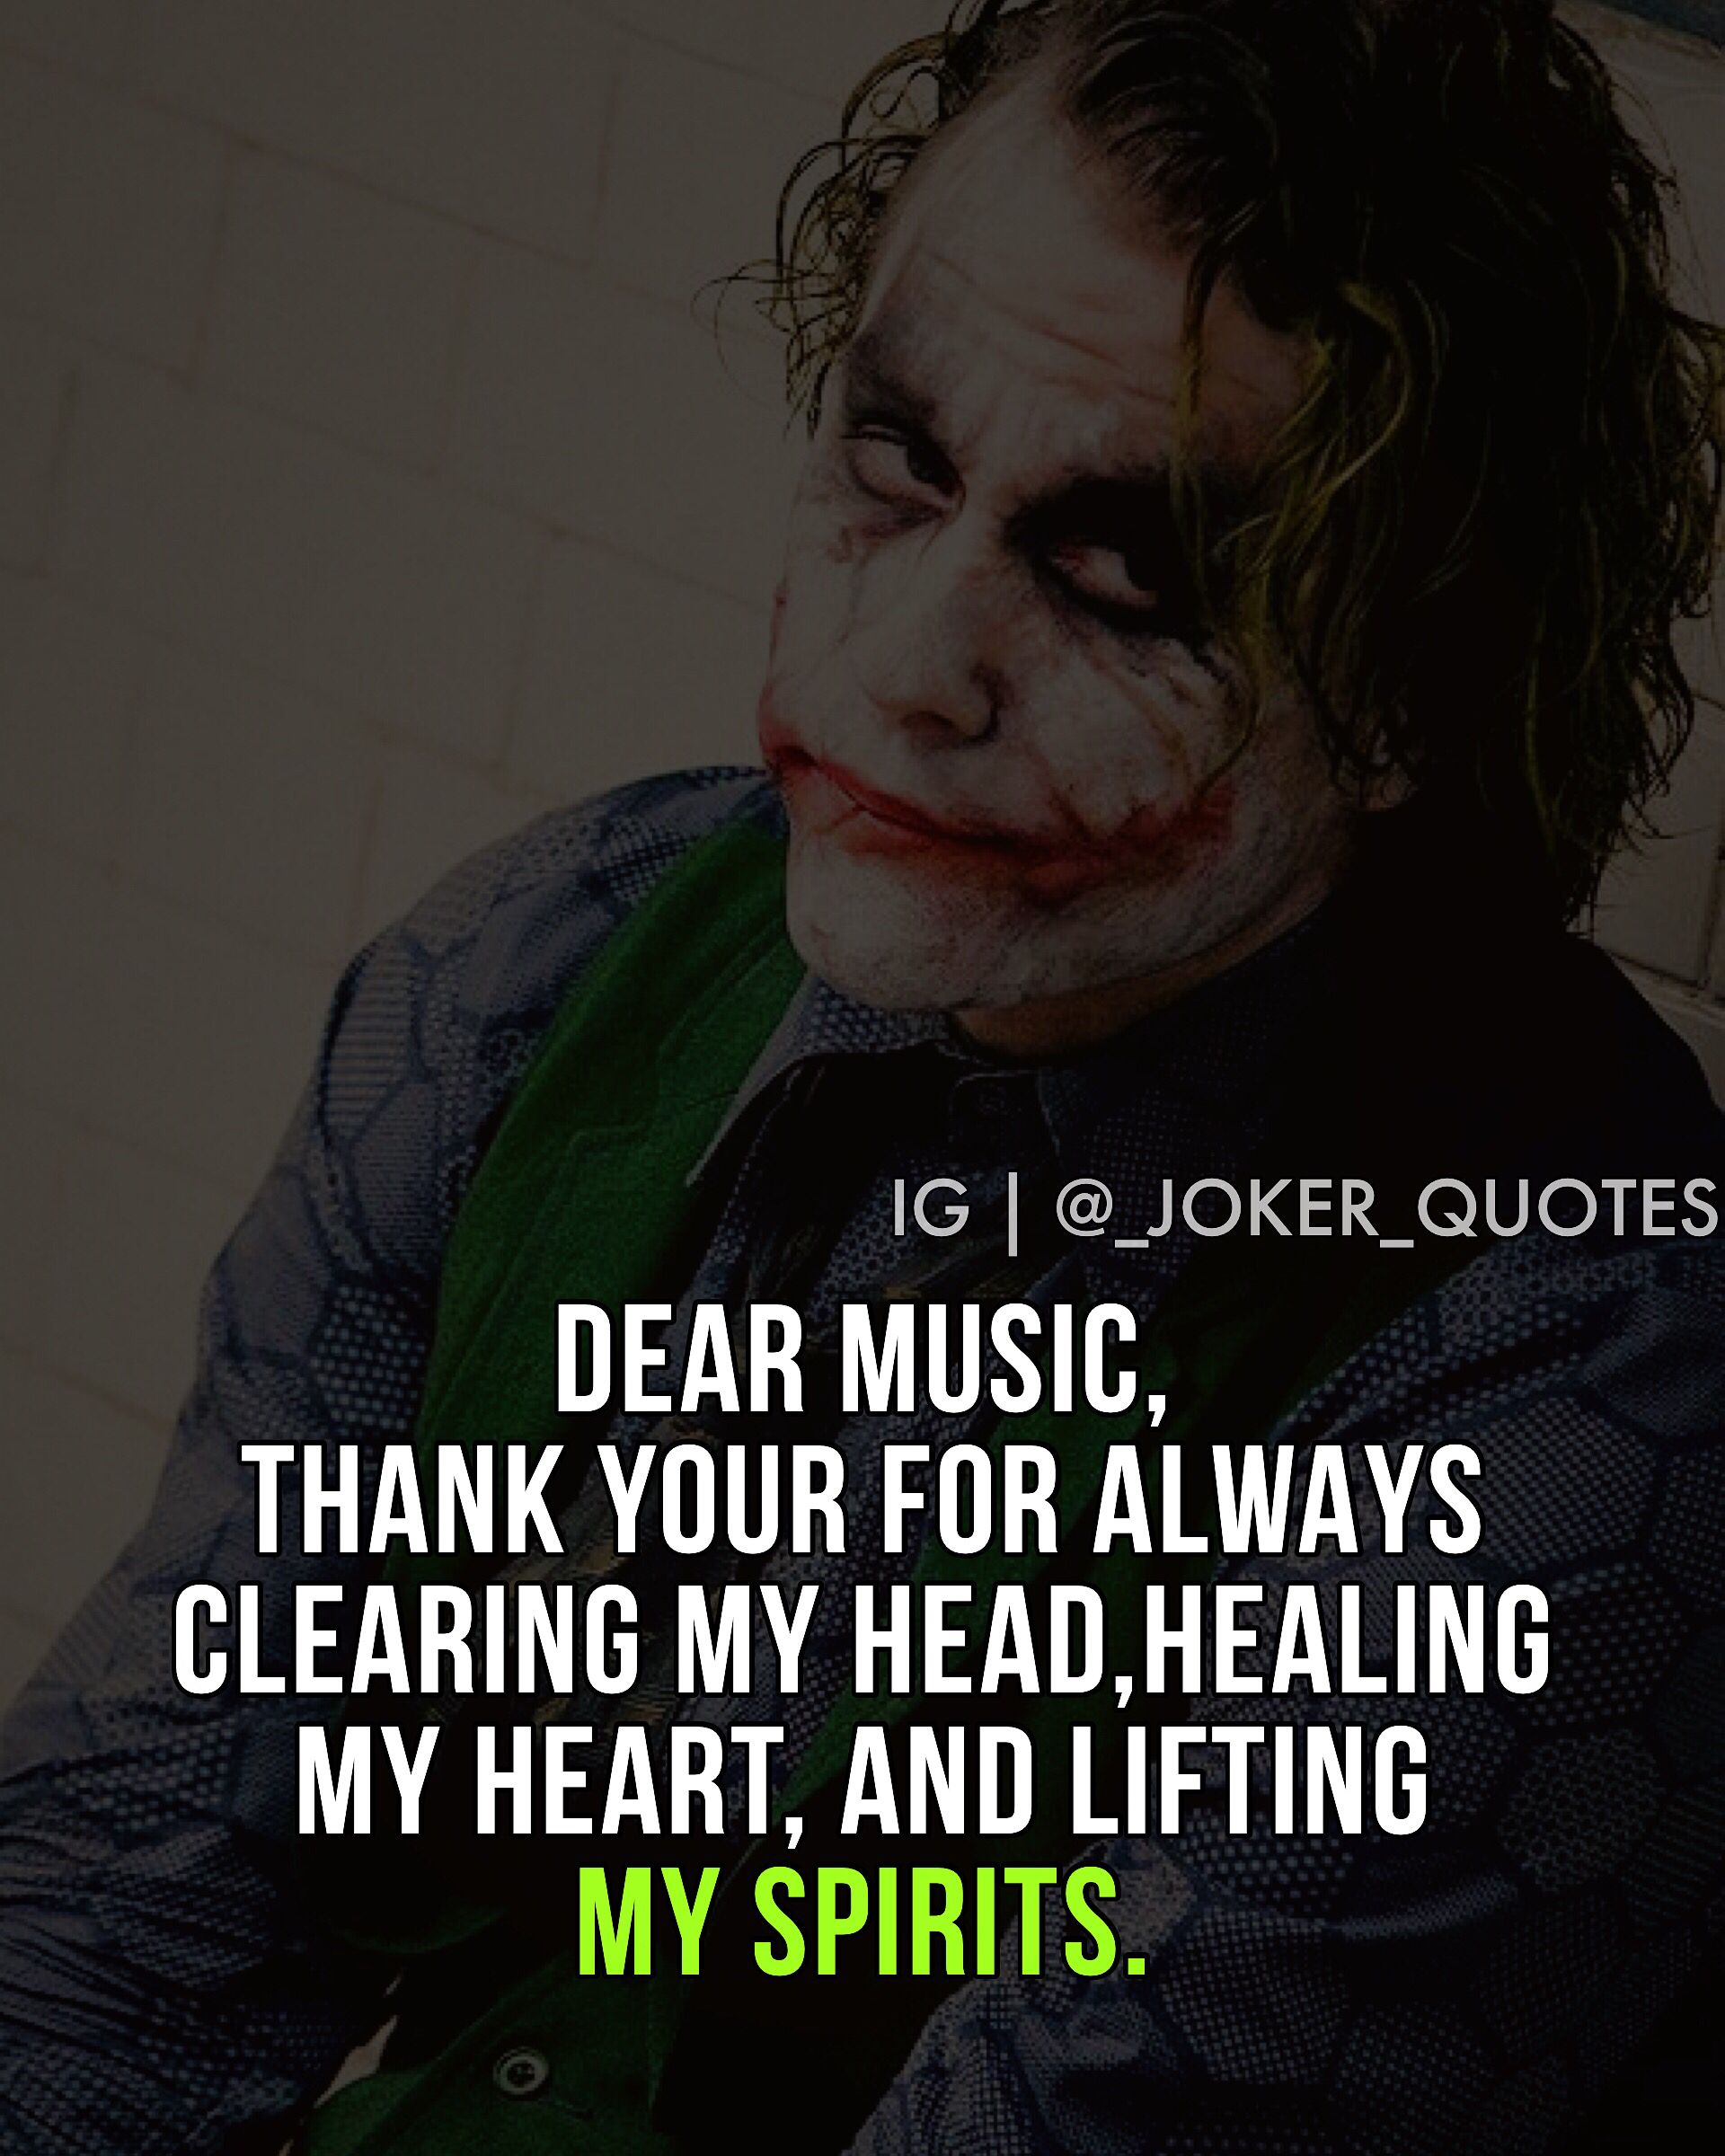 Pin by The Joker Quotes on JOKER QUOTES | Best joker ...